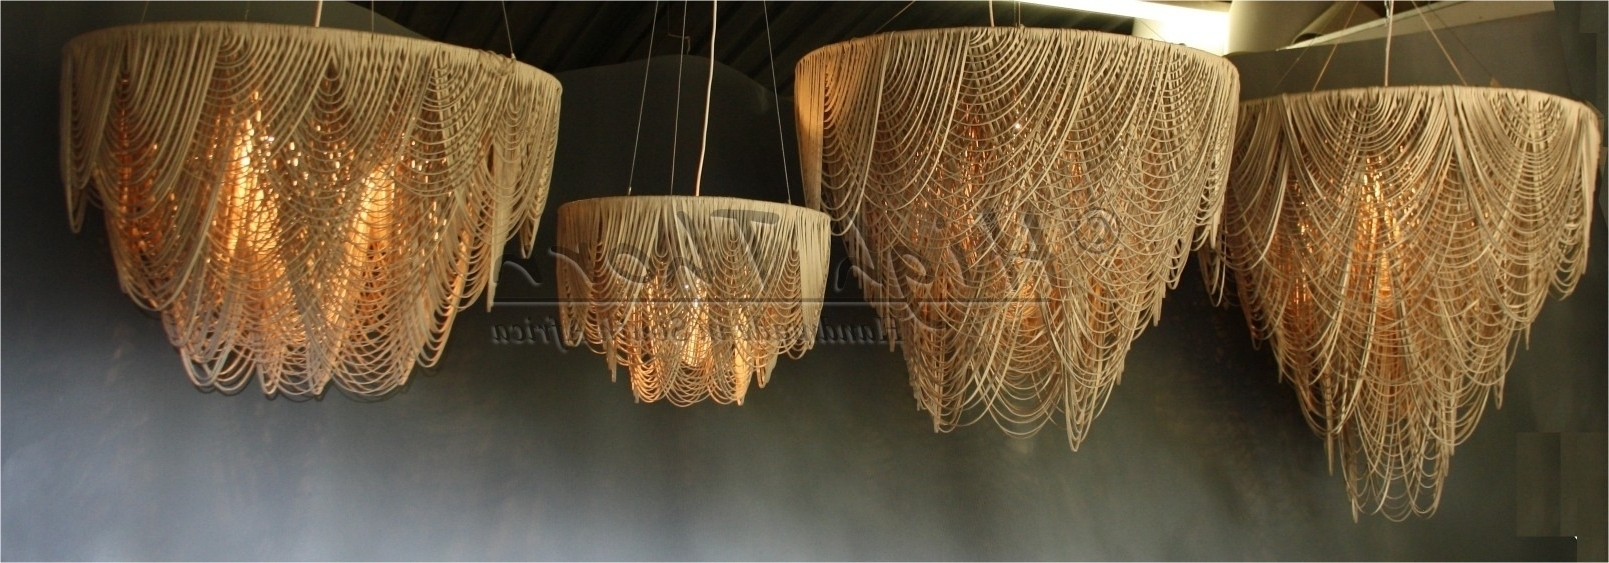 Leather Chandeliers Intended For Current High Thorn – Handmade In South Africa – Lighting, Furniture, Home (View 2 of 15)